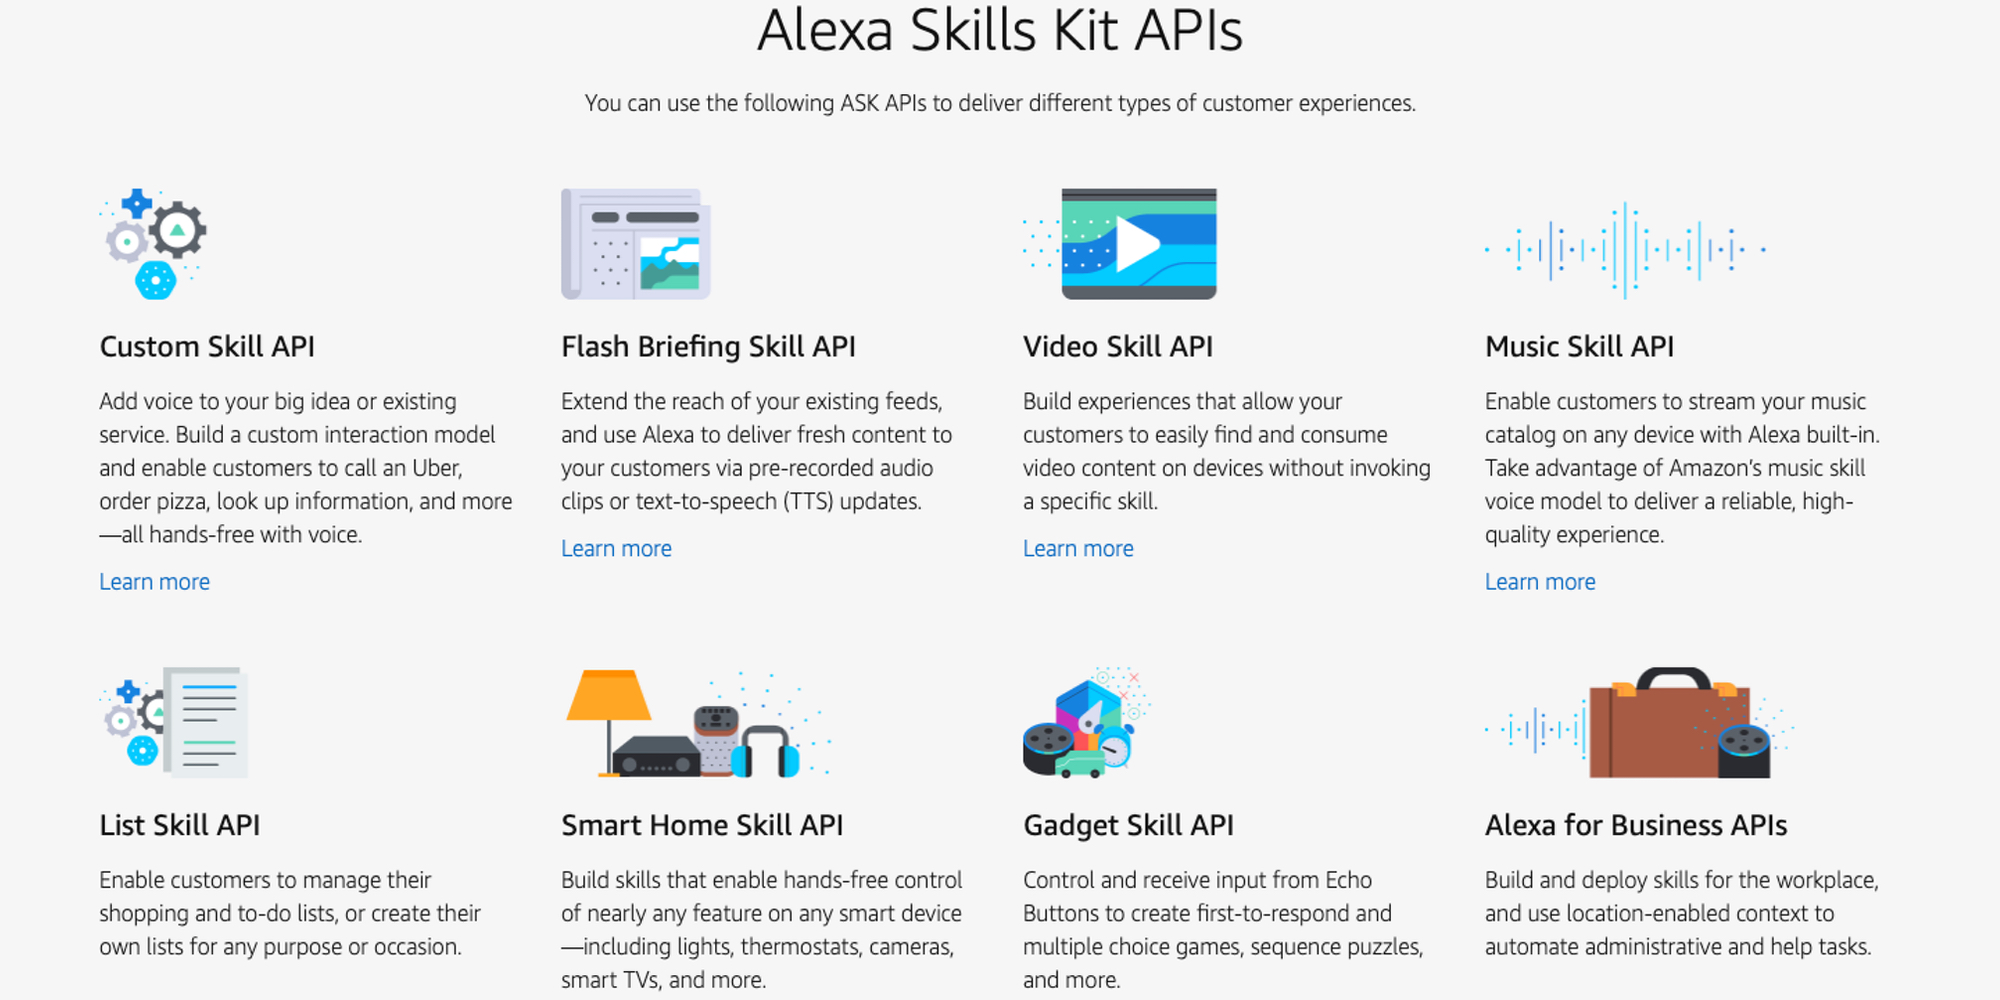 Alexa skills kit APIs